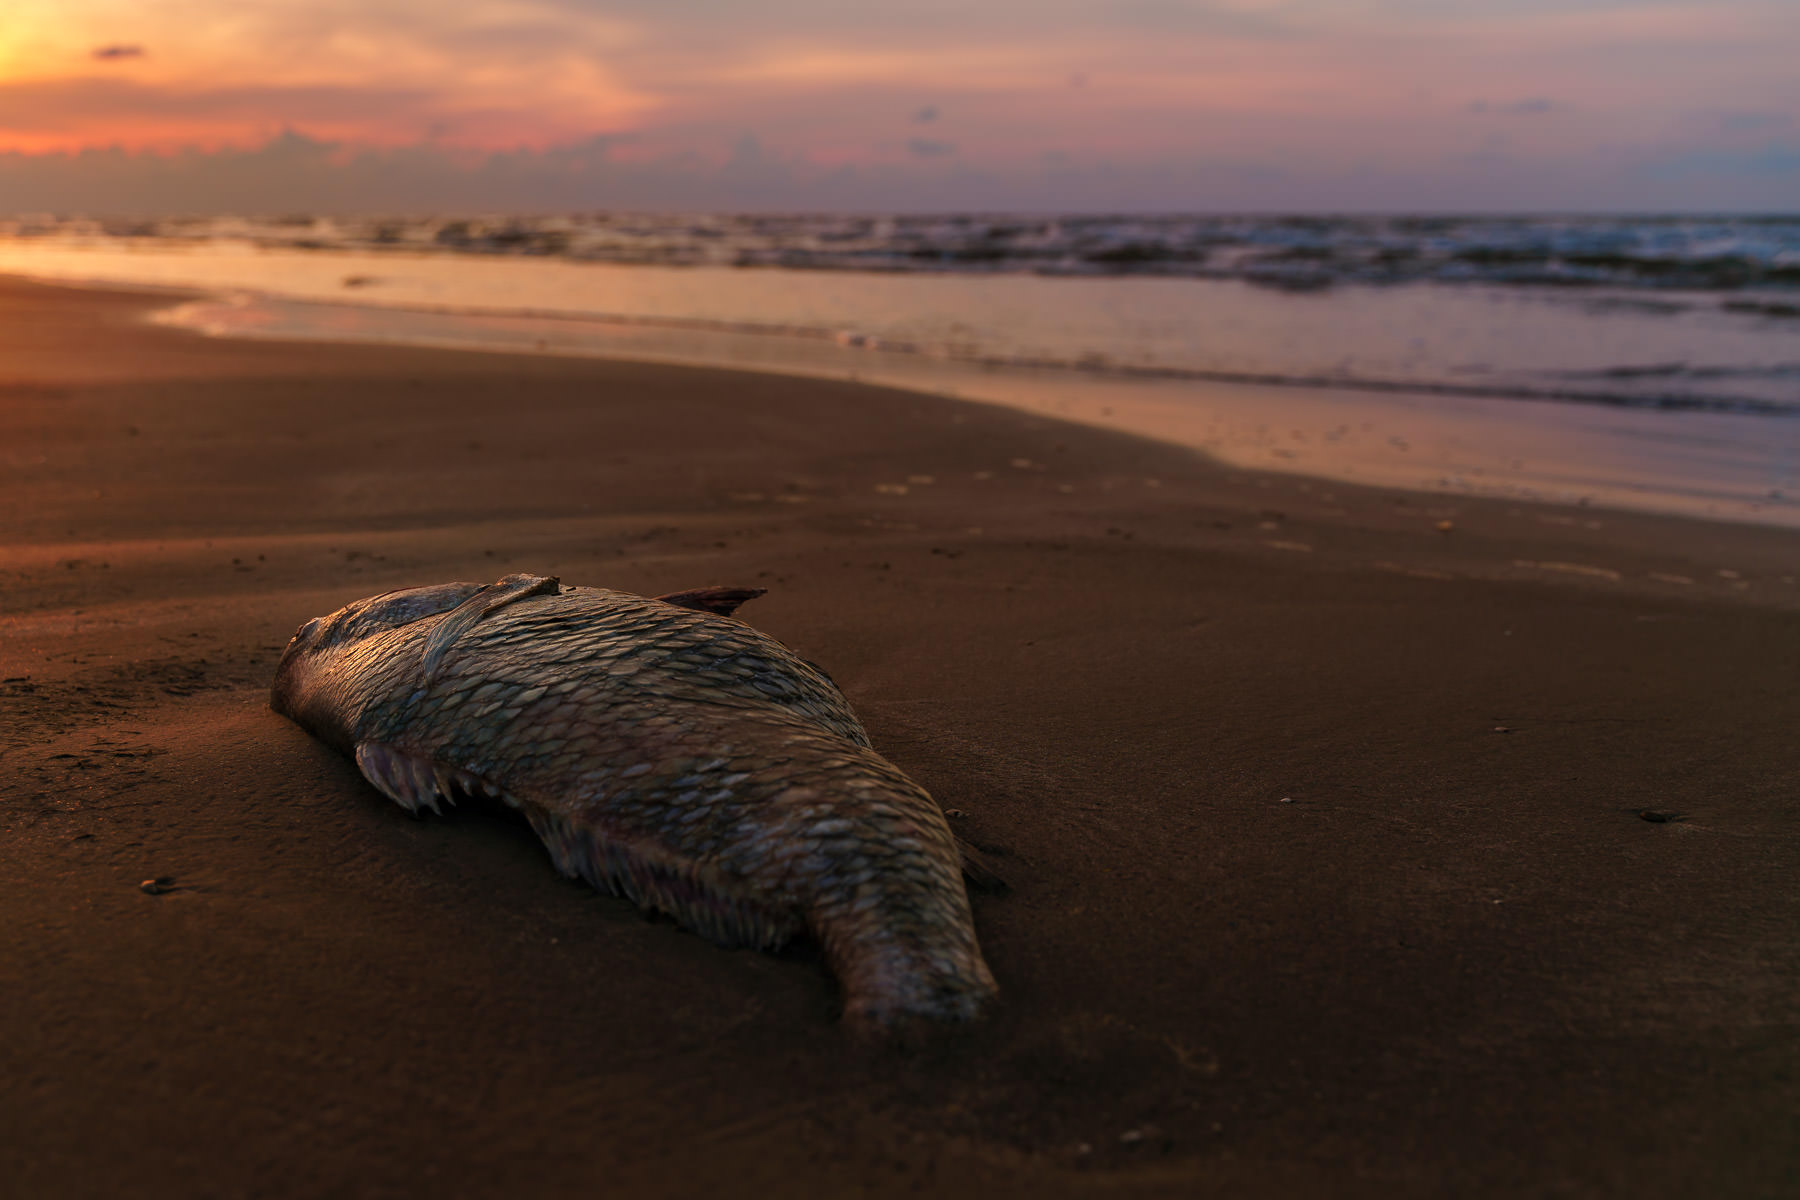 The sun rises on a dead fish, washed up on a Galveston, Texas, beach.